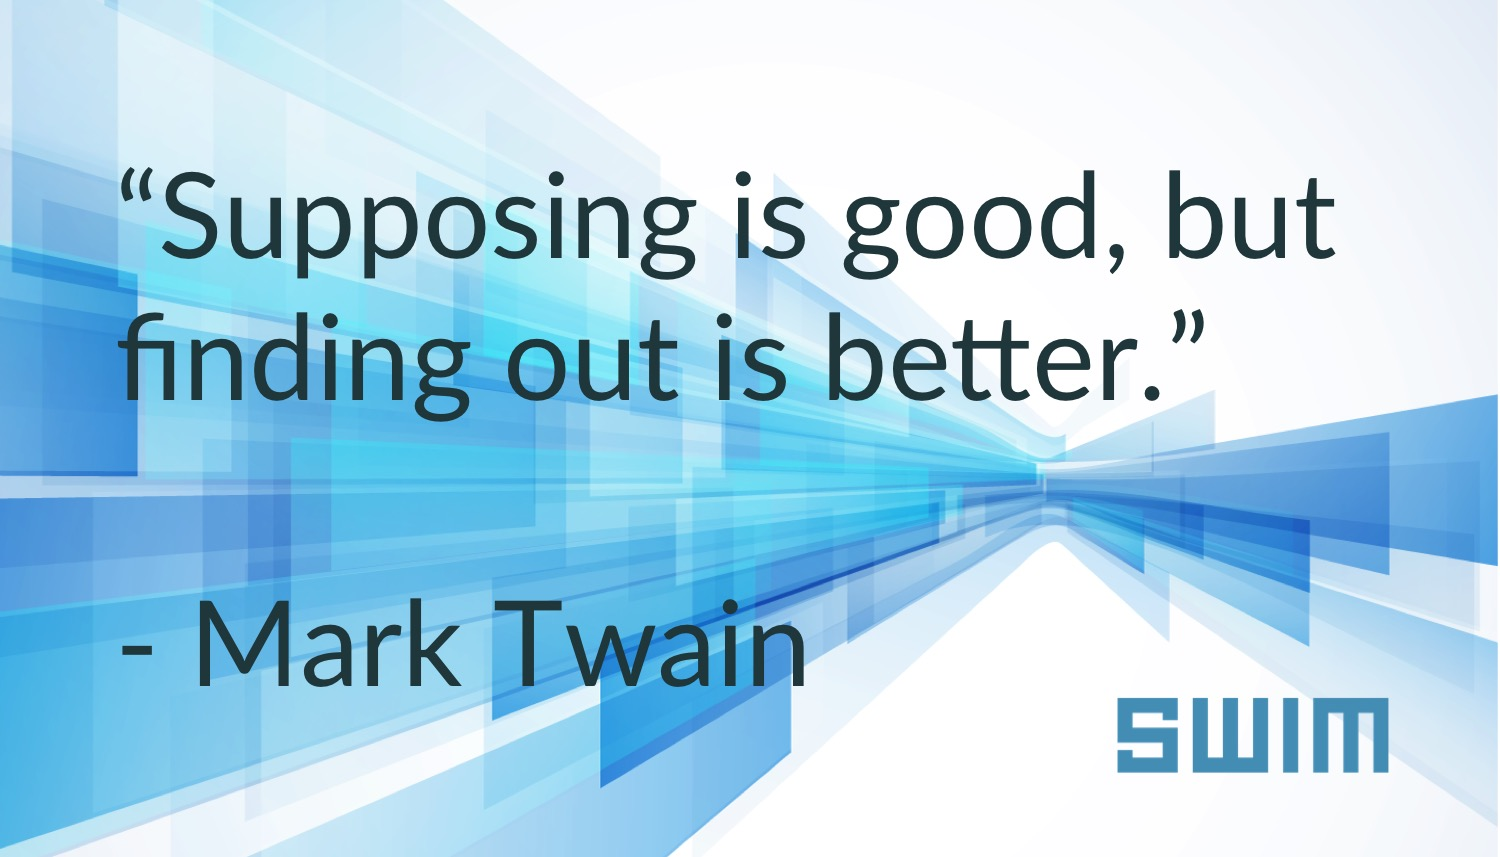 """Supposing is good, but finding out is better."" Mark Twain"